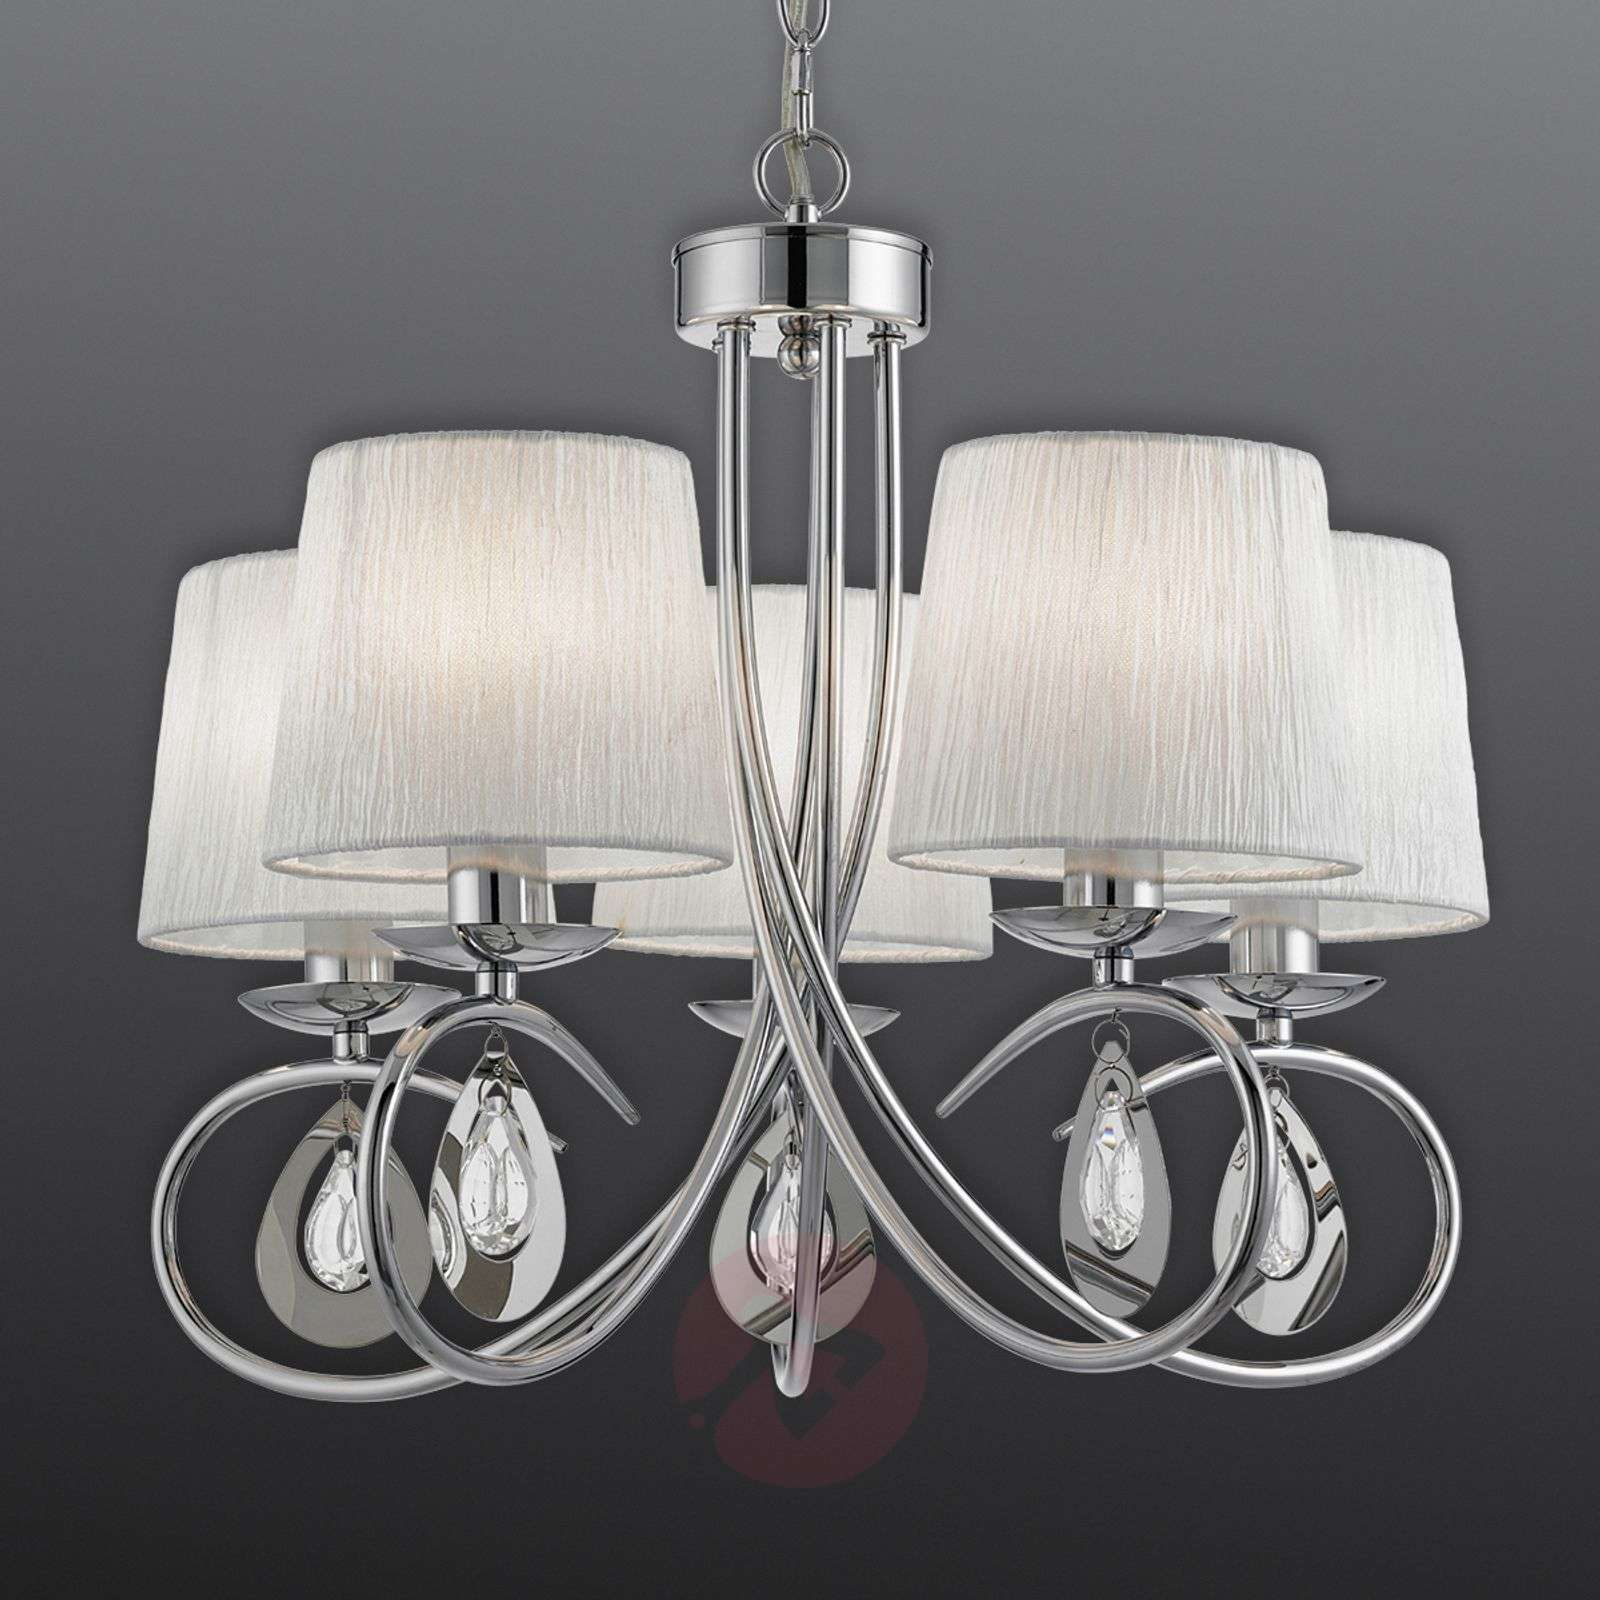 Magnificent Angelique hanging light with 5 bulbs-8570894-01